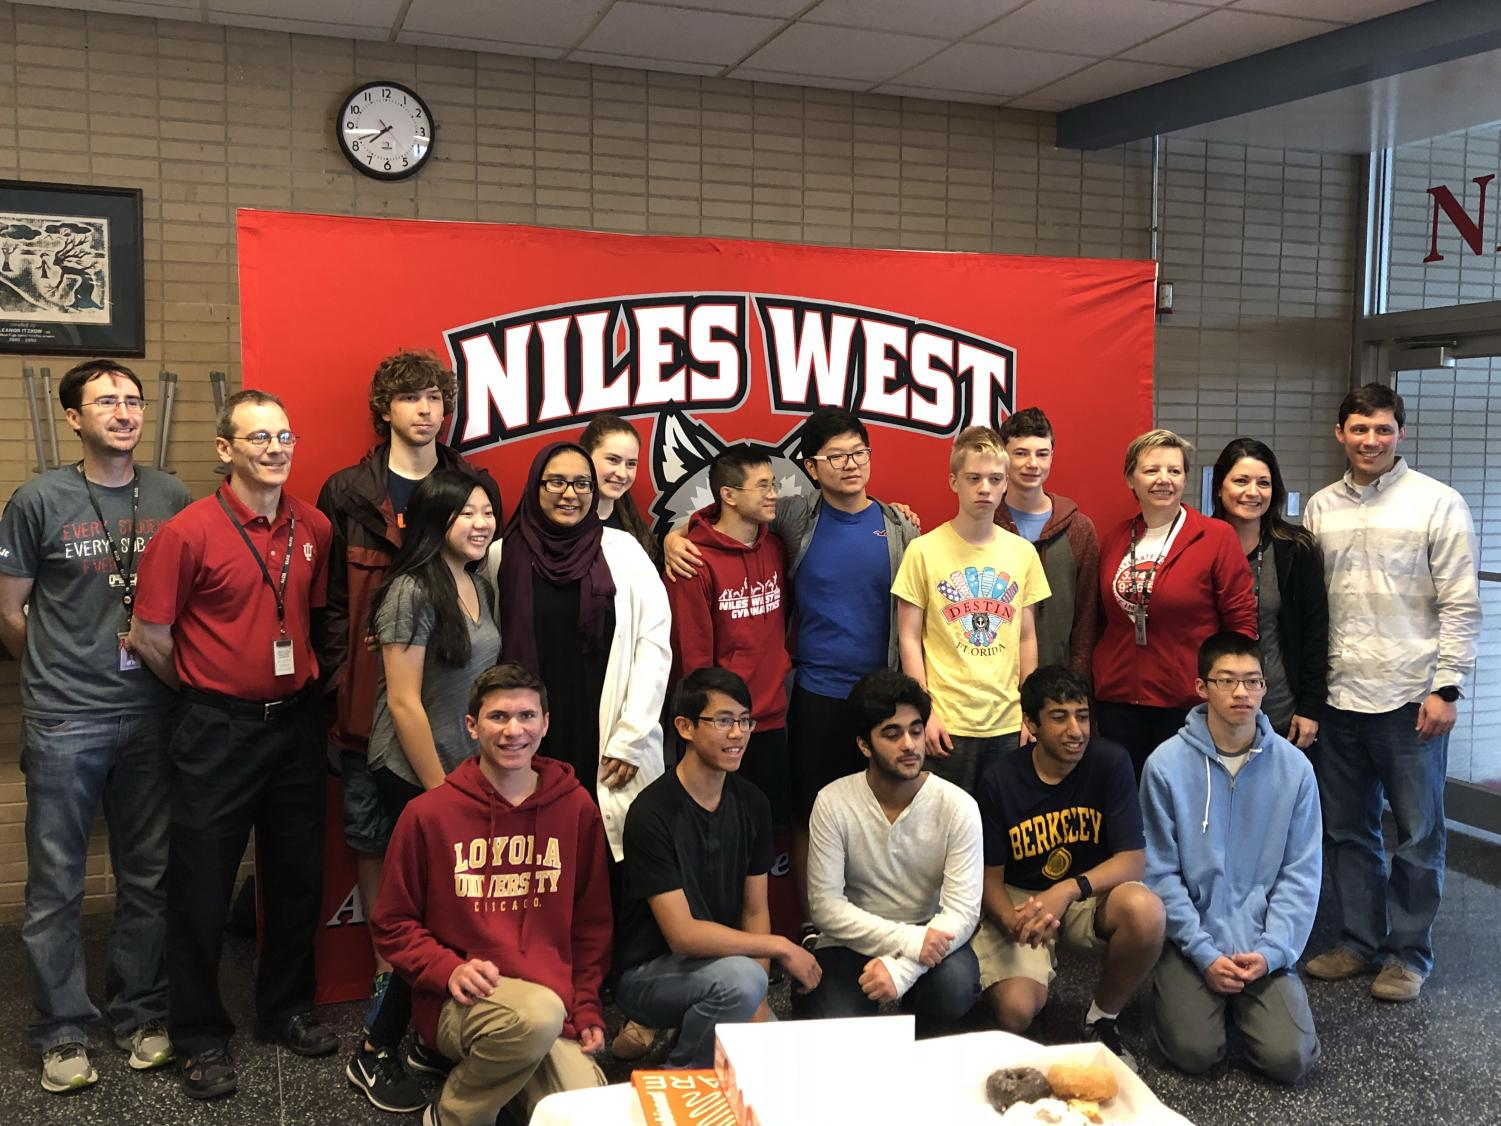 The Niles West Math Team before leaving for the state competition at UIUC last year.